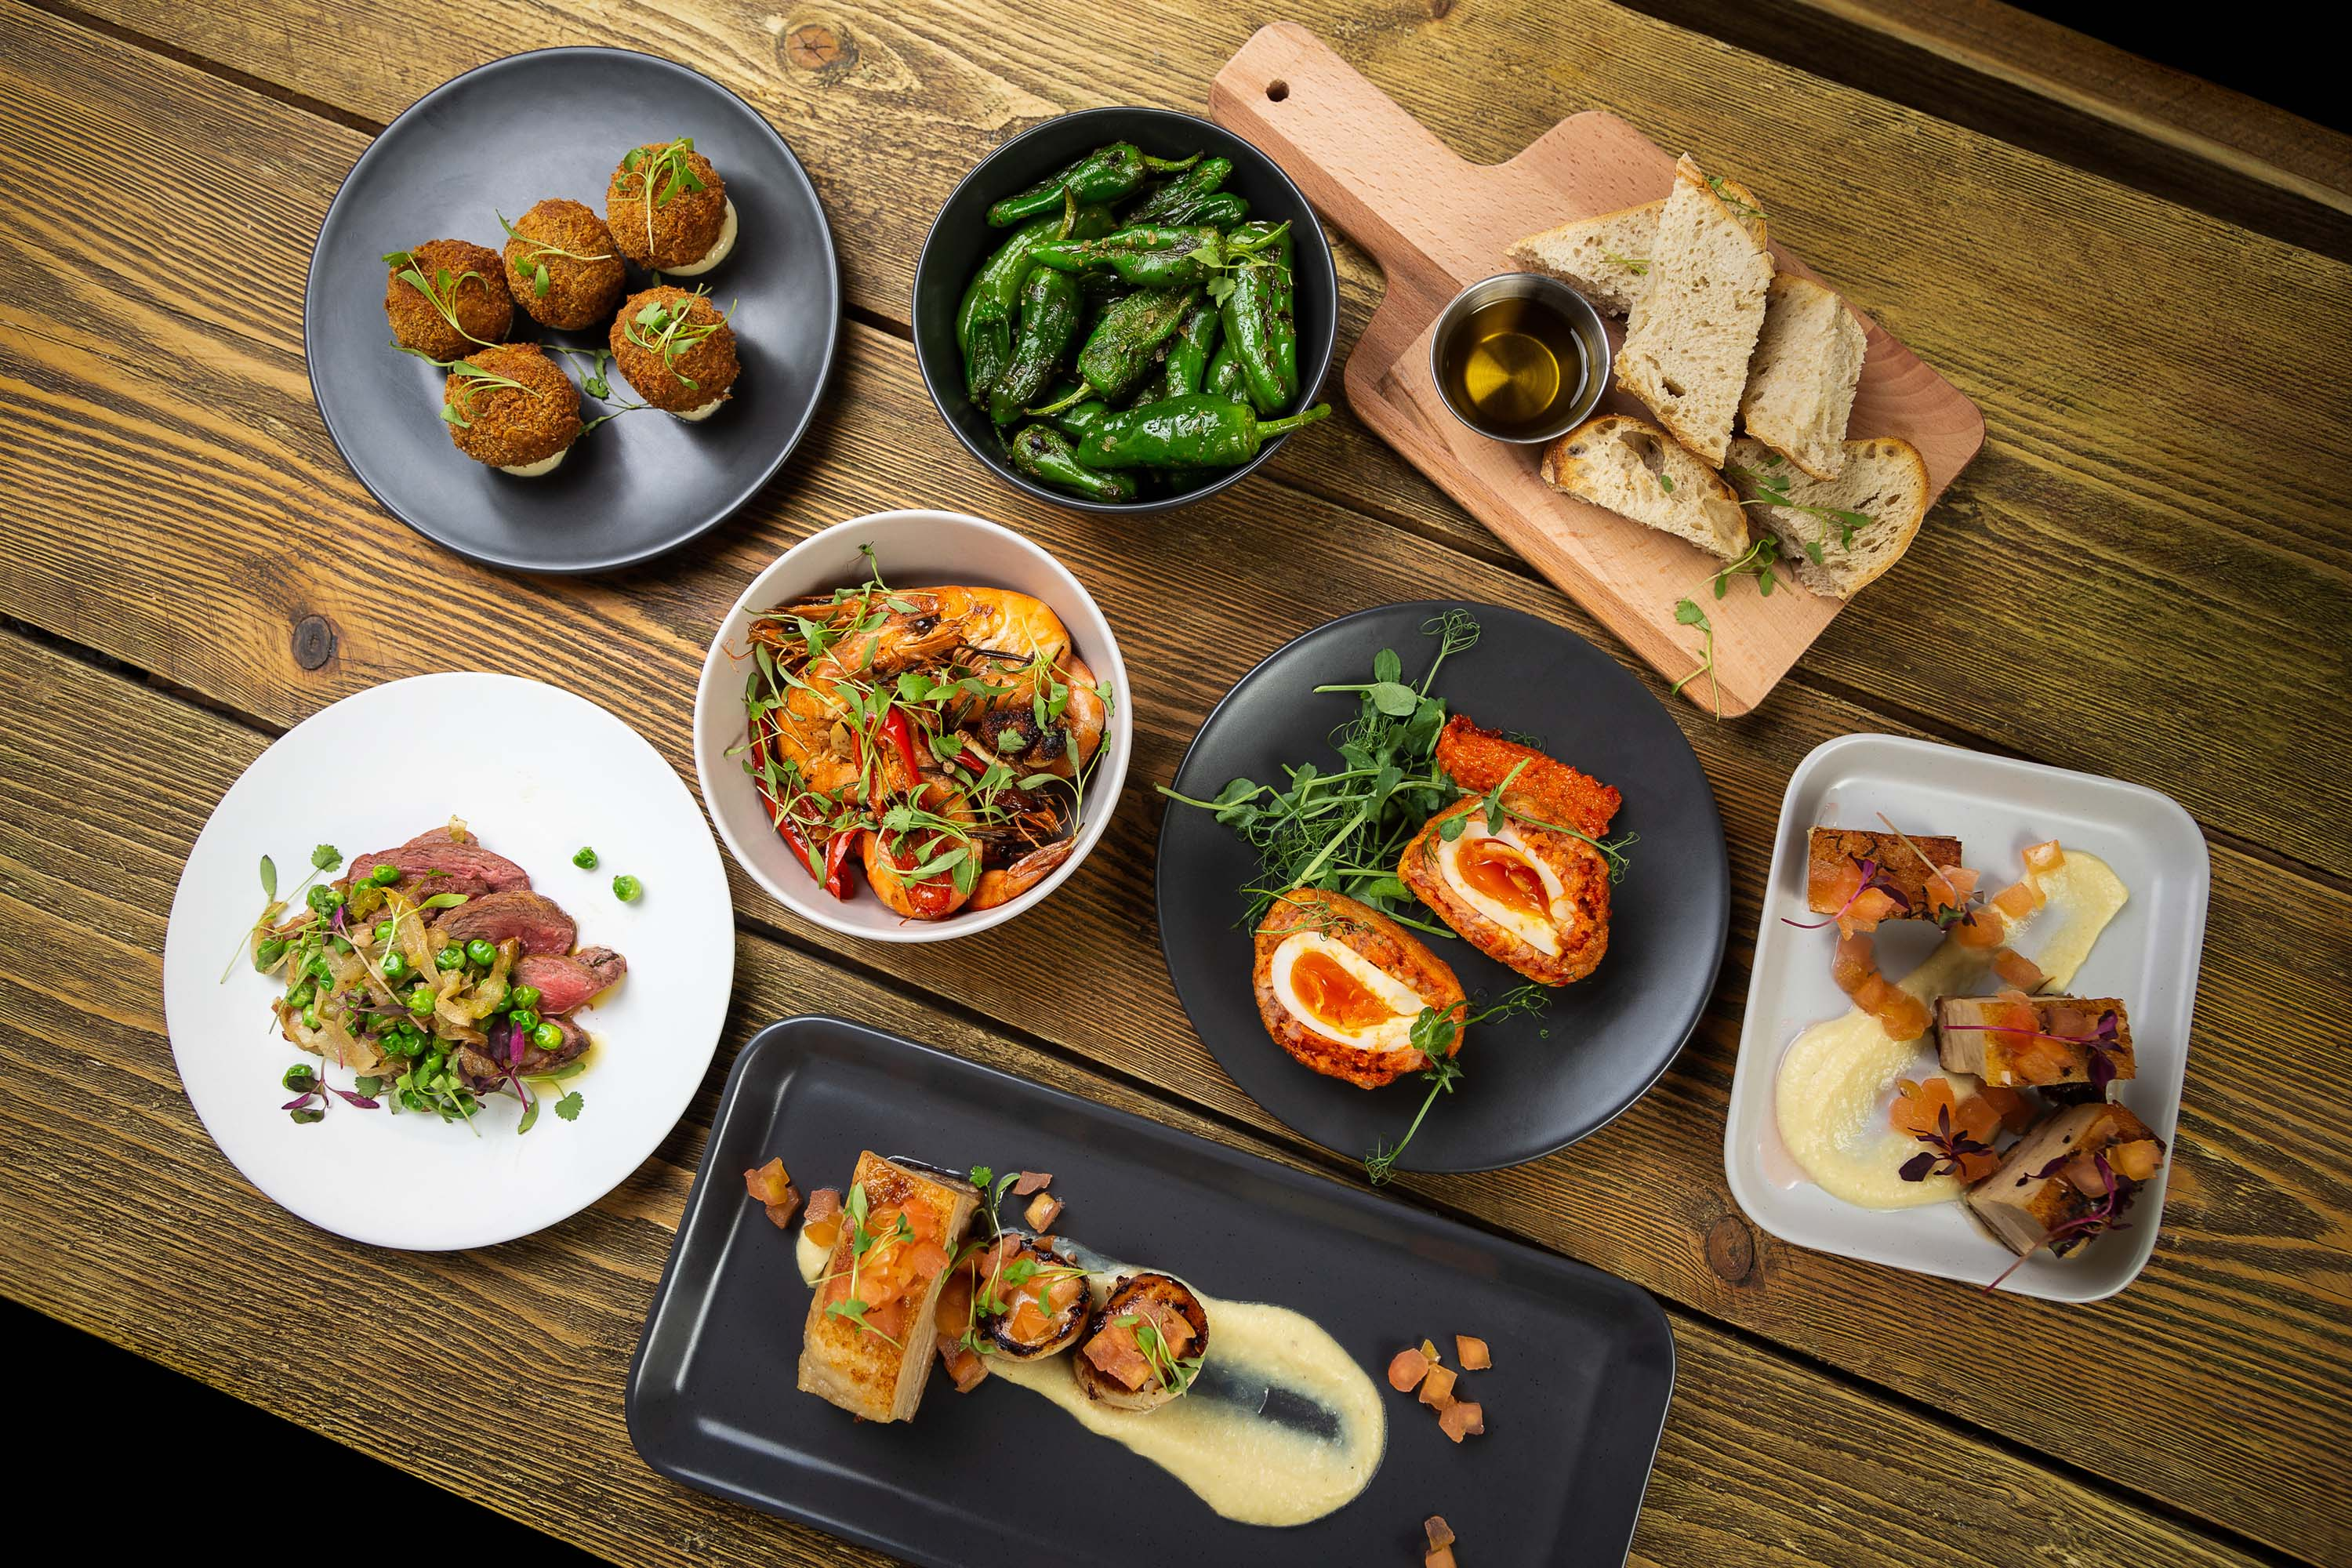 Table full of tapas dishes